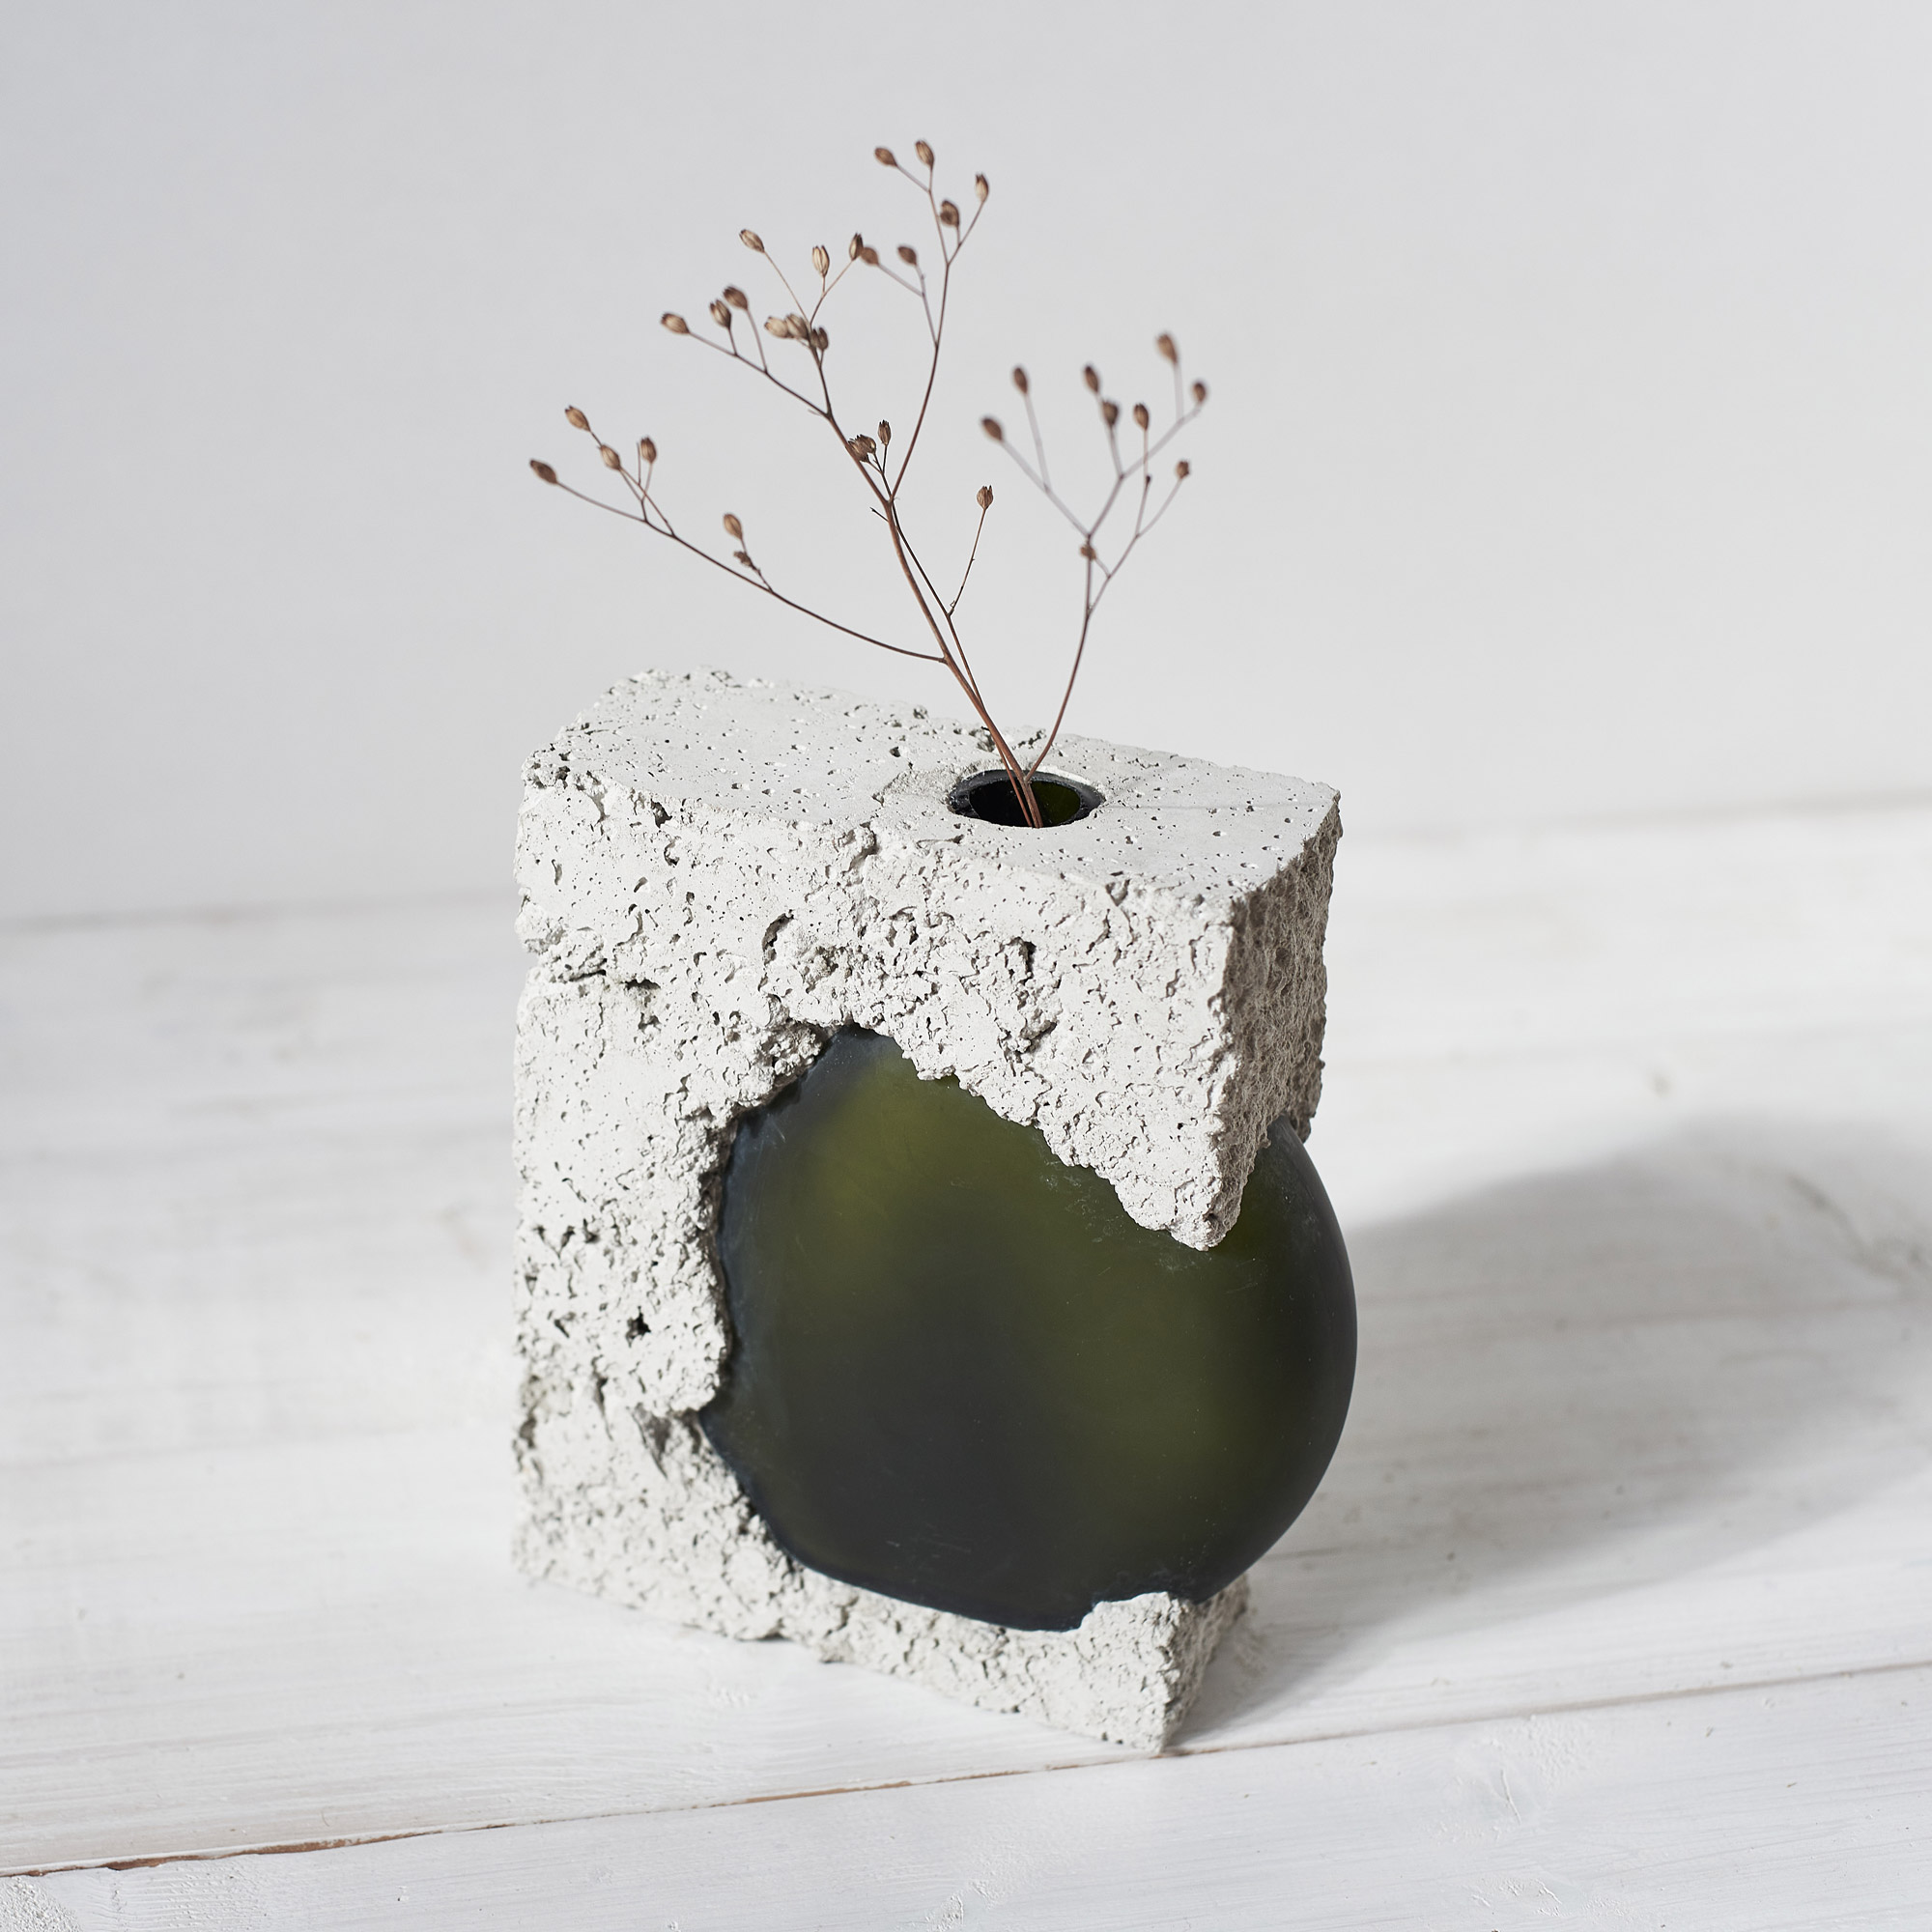 Concrete vase with green glass and flowers handmade by Prasklo design studio